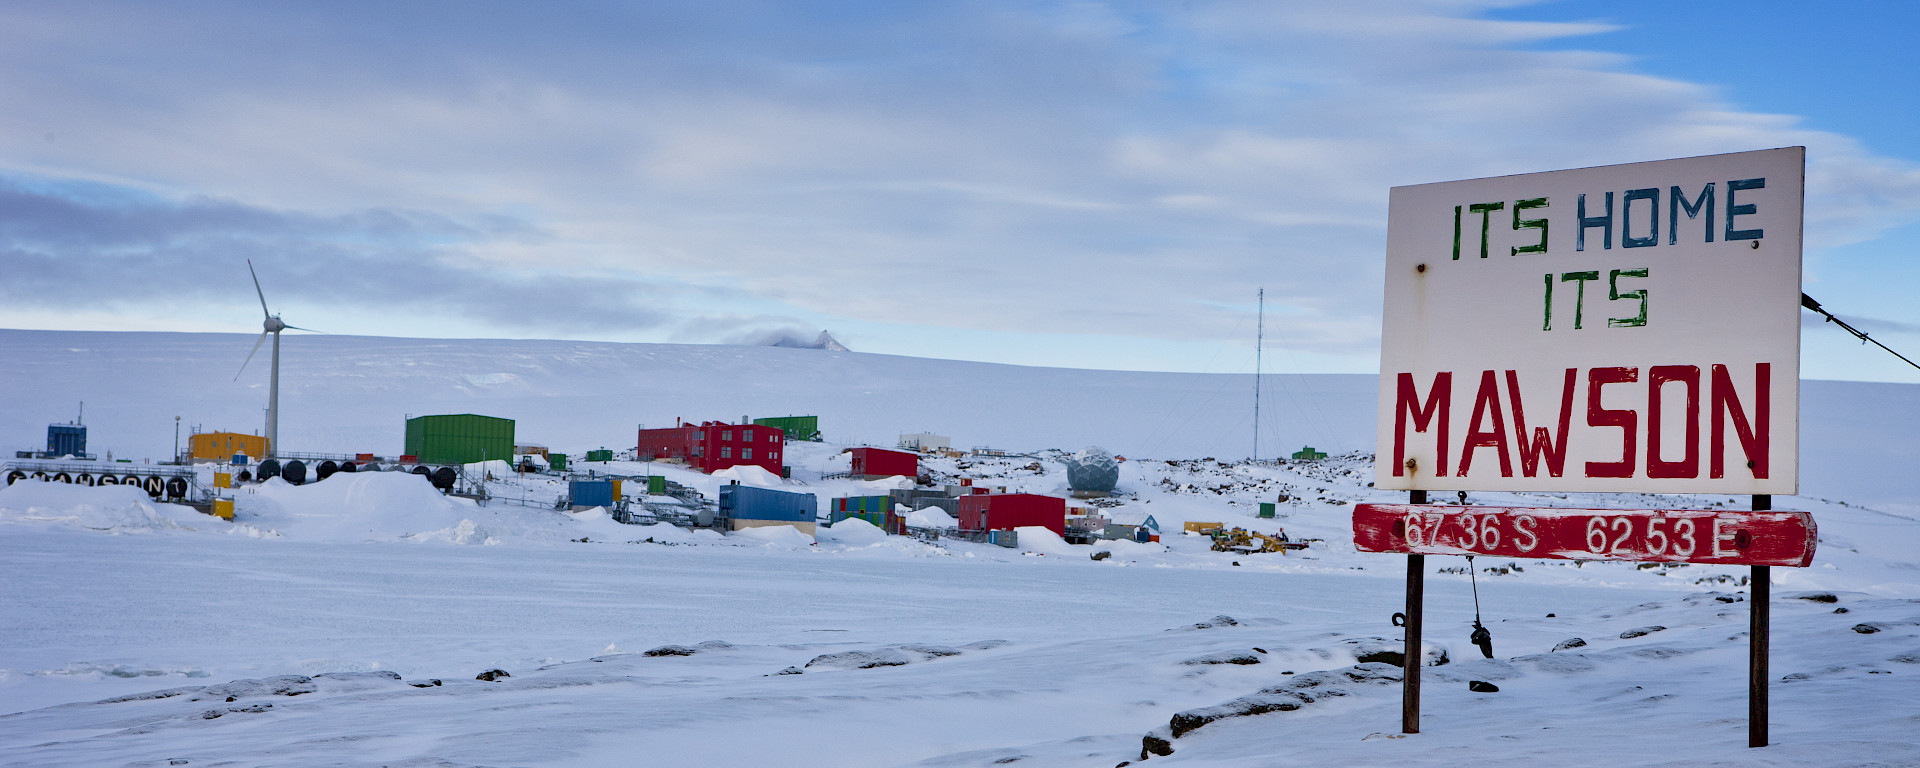 "Mawson station from West Arm after snowfall, showing station sign ""Its Home its Mawson"" plus a iced over Horseshoe Harbour"